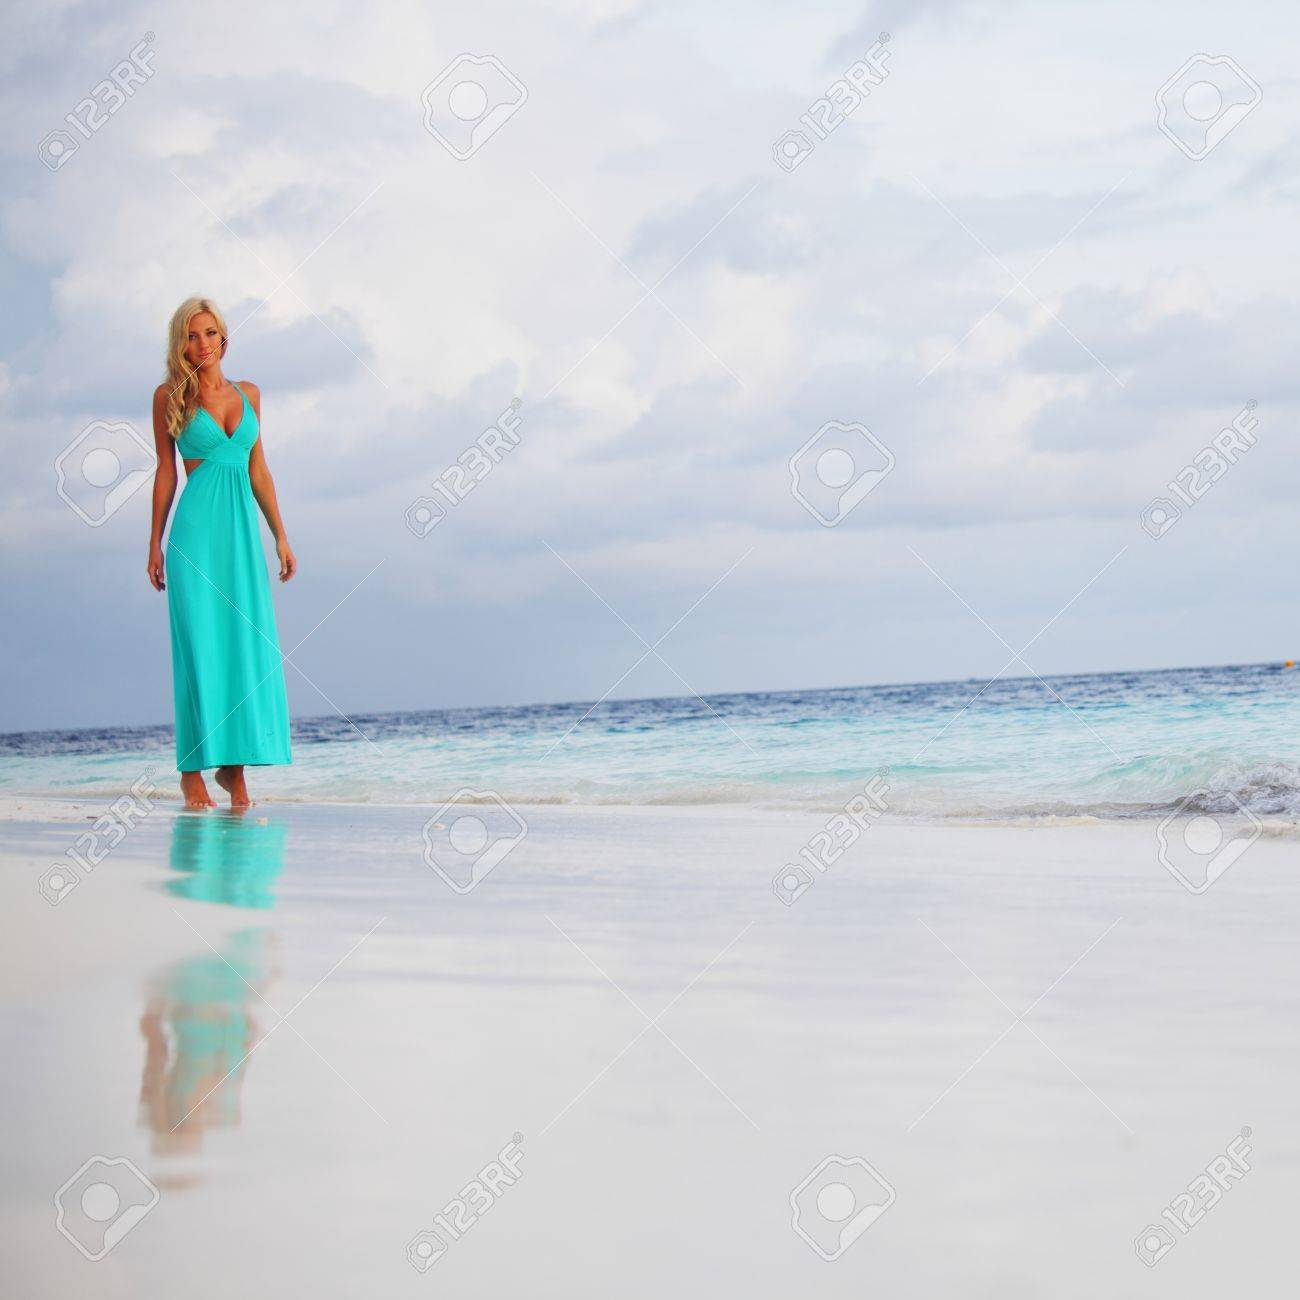 woman in a blue dress on the ocean coast Stock Photo - 10895813